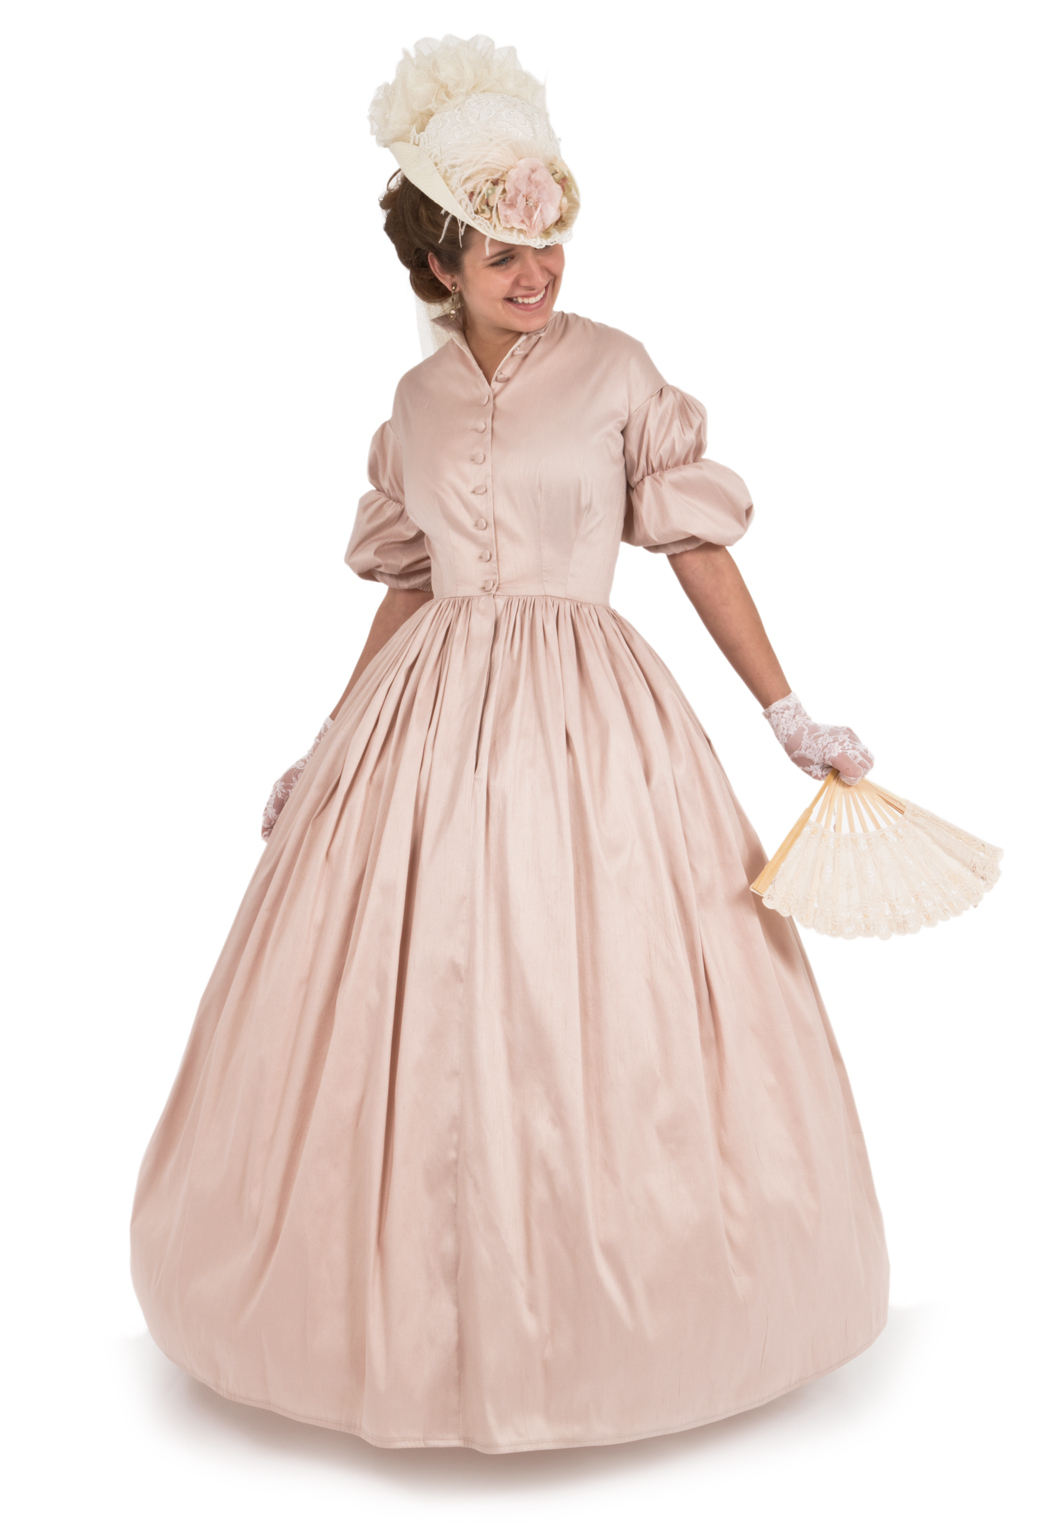 Victorian Ball Gown Sale from Recollections (Page 2 of 3)